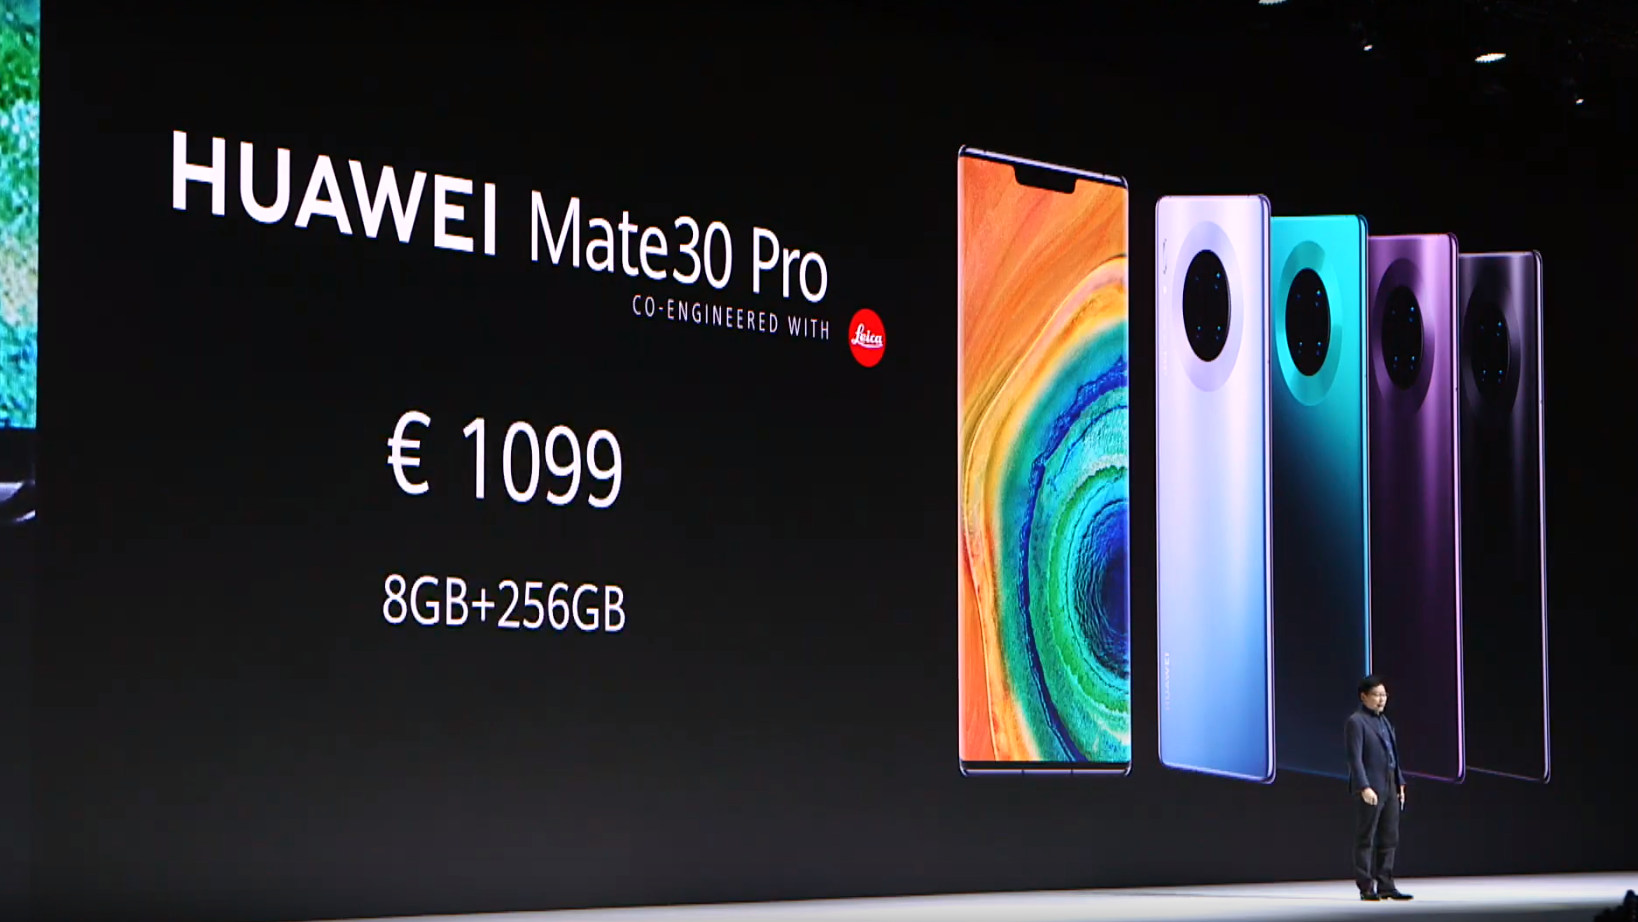 Huawei's Mate 30 And Mate 30 Pro Pack Big Cams And Blazing 5G Support